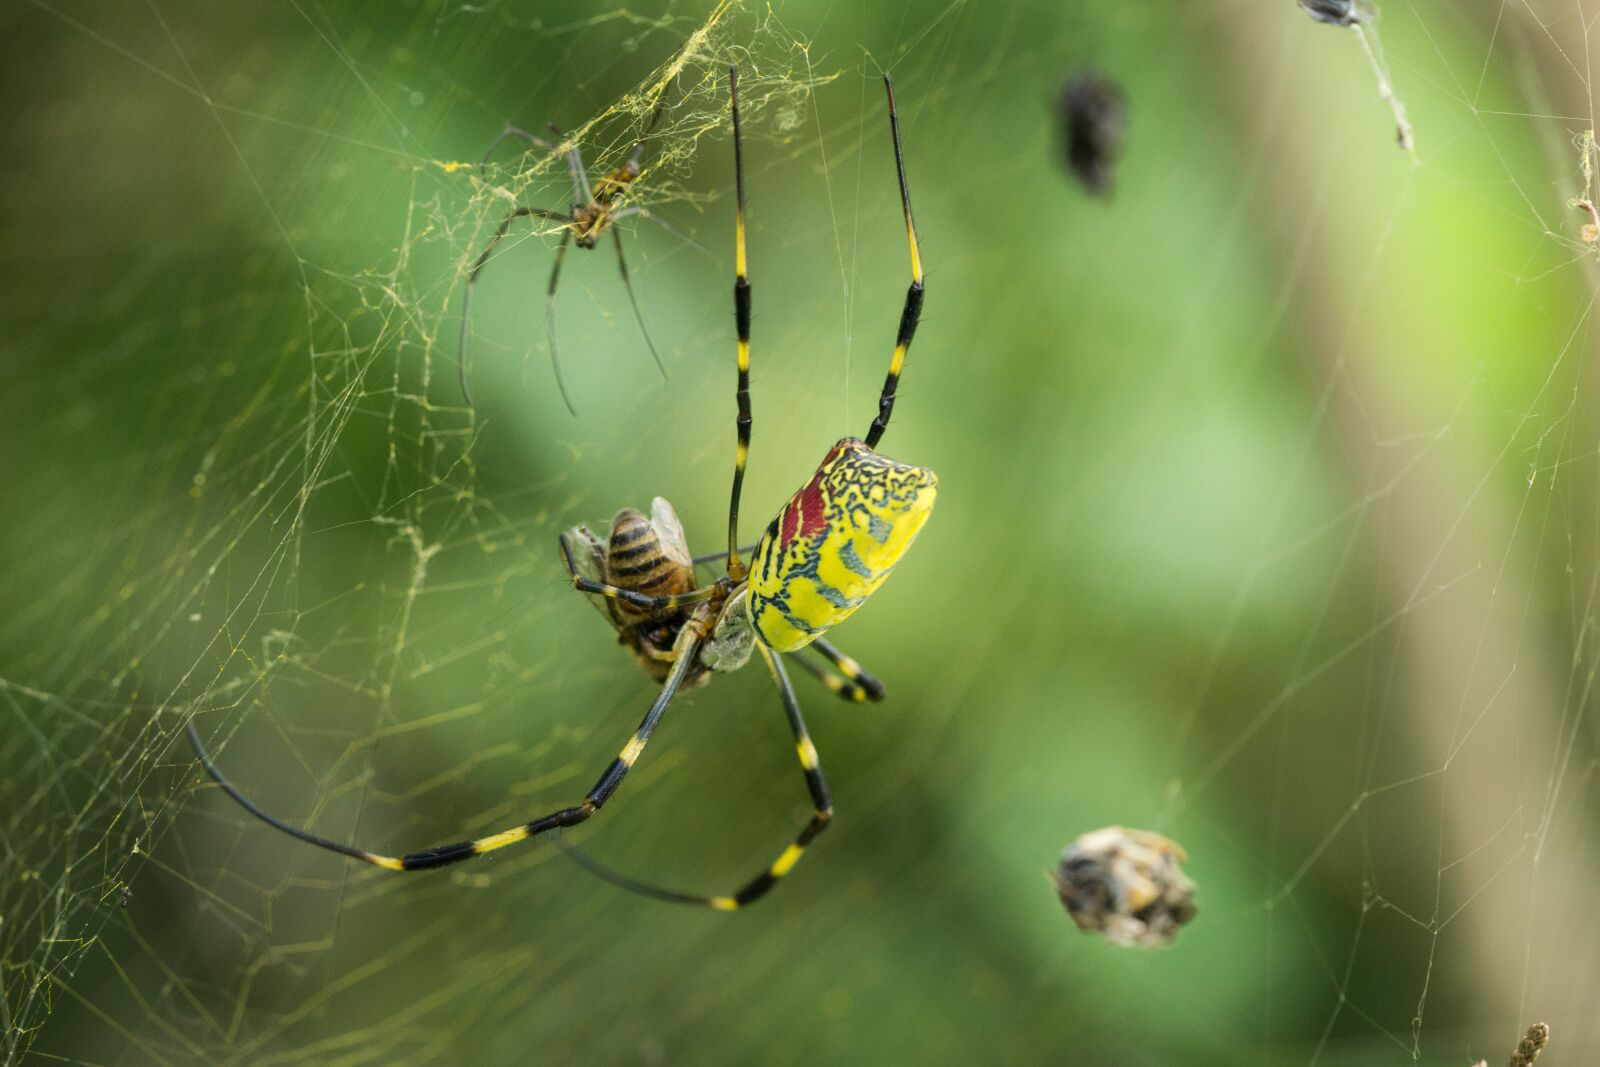 """Sony a6000 sample photo. """"Spider, spider web, macro"""" photography"""